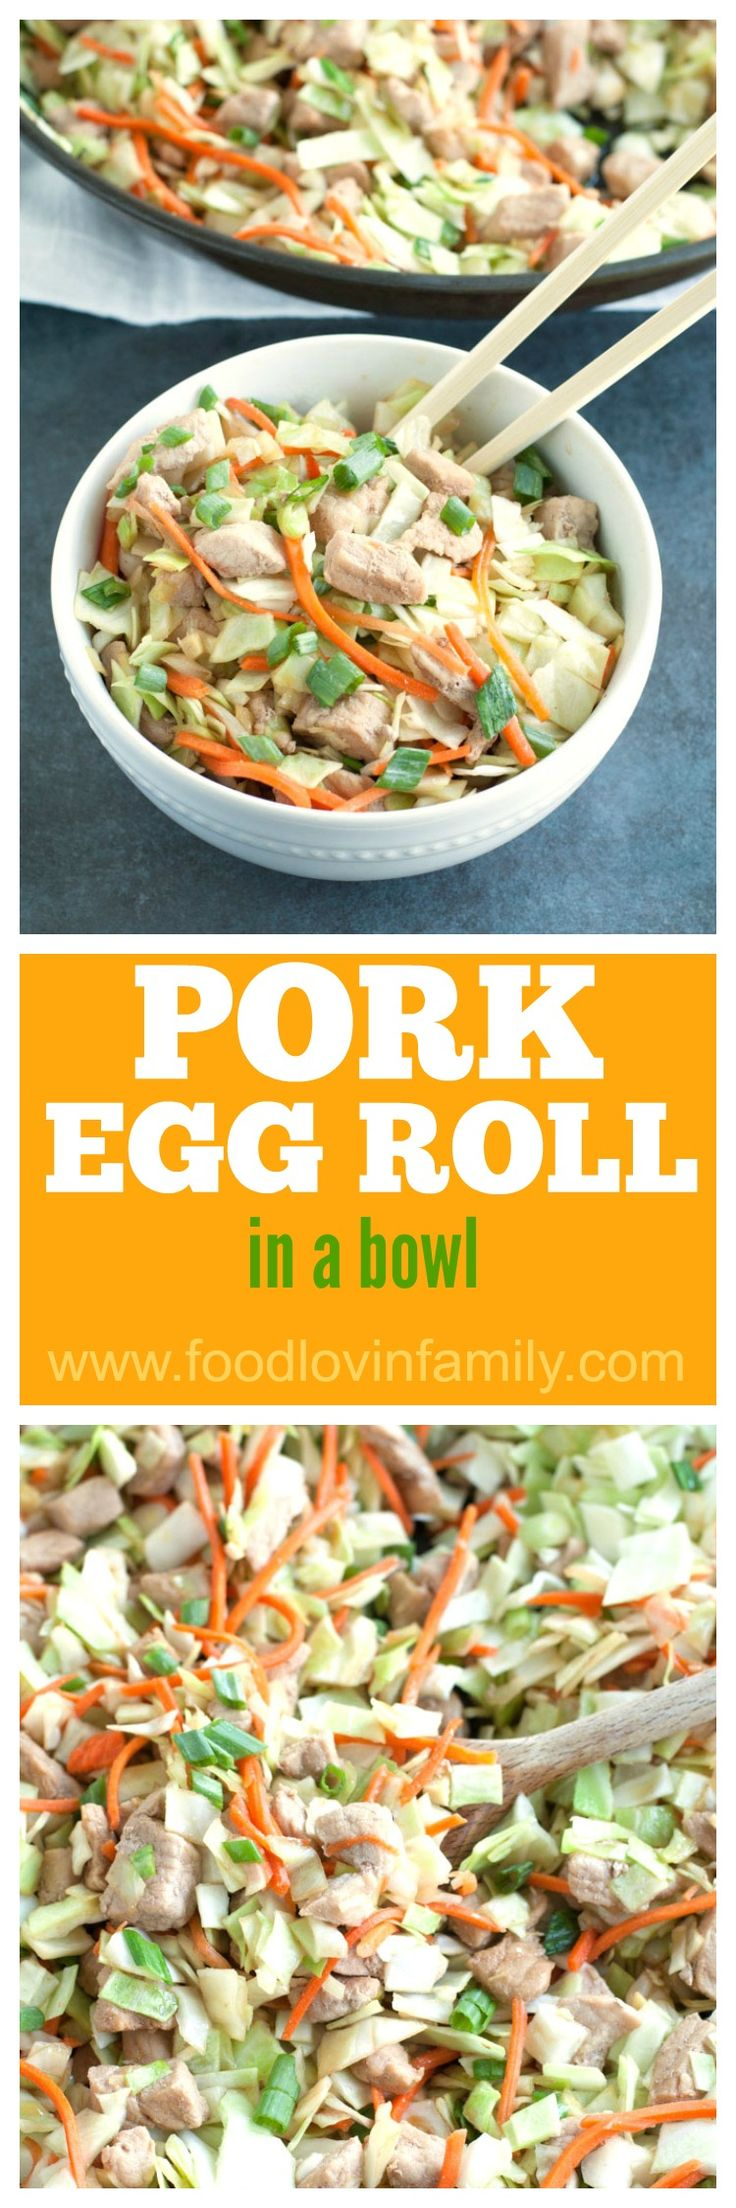 Pork Egg roll In A Bowl is a delicious twist on the classic egg roll. All of the flavor without the wrapper in 30 minutes. #ad #AllNaturalPork @Smithfield @Walmart